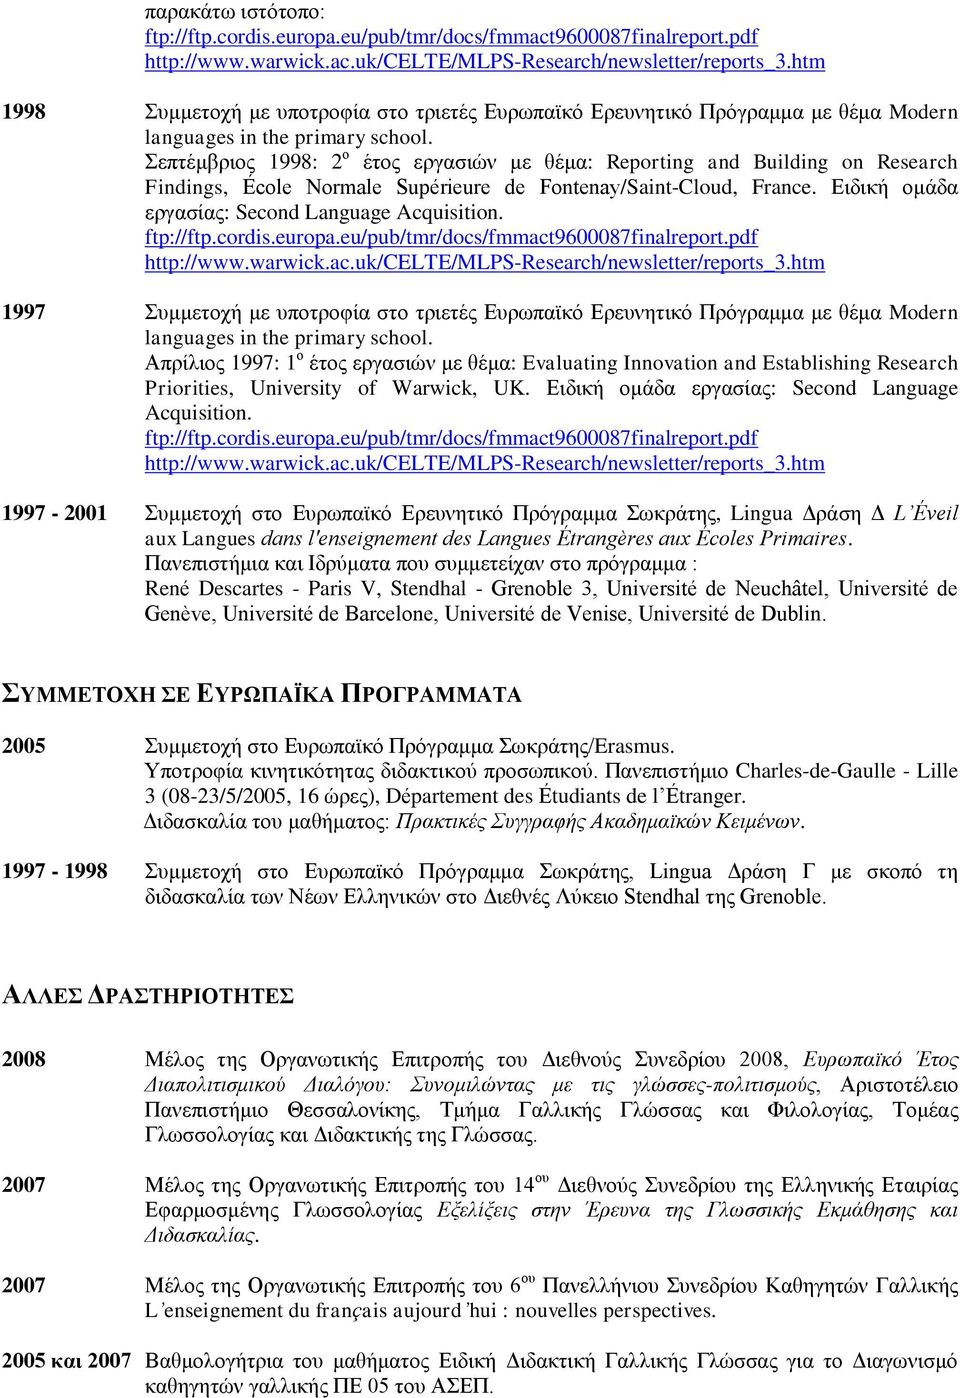 Σεπτέμβριος 1998: 2 ο έτος εργασιών με θέμα: Reporting and Building on Research Findings, École Normale Supérieure de Fontenay/Saint-Cloud, France. Ειδική ομάδα εργασίας: Second Language Acquisition.